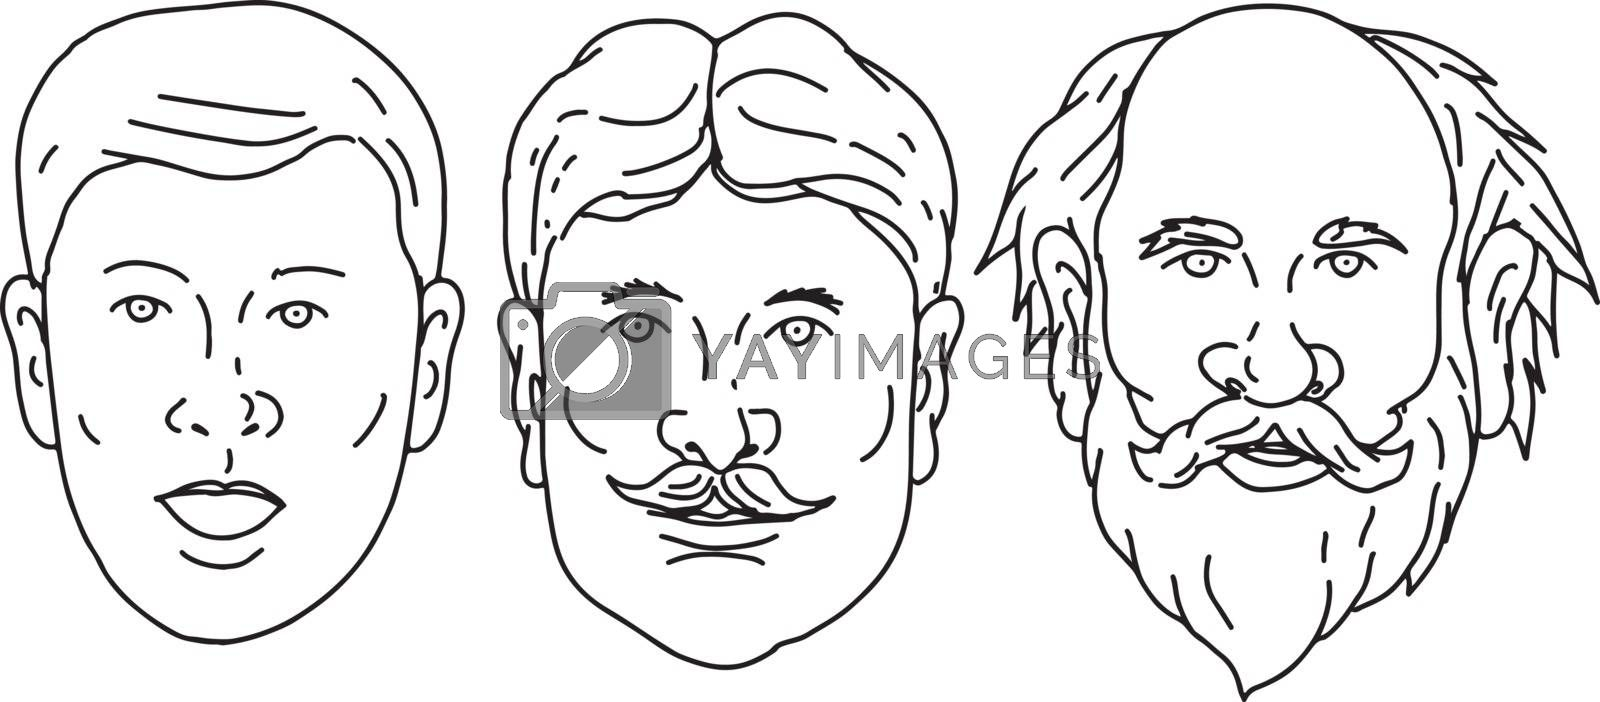 Drawing sketch style illustration of  head of a Caucasian male morphing from young to adult middle age to old senior on isolated white background.